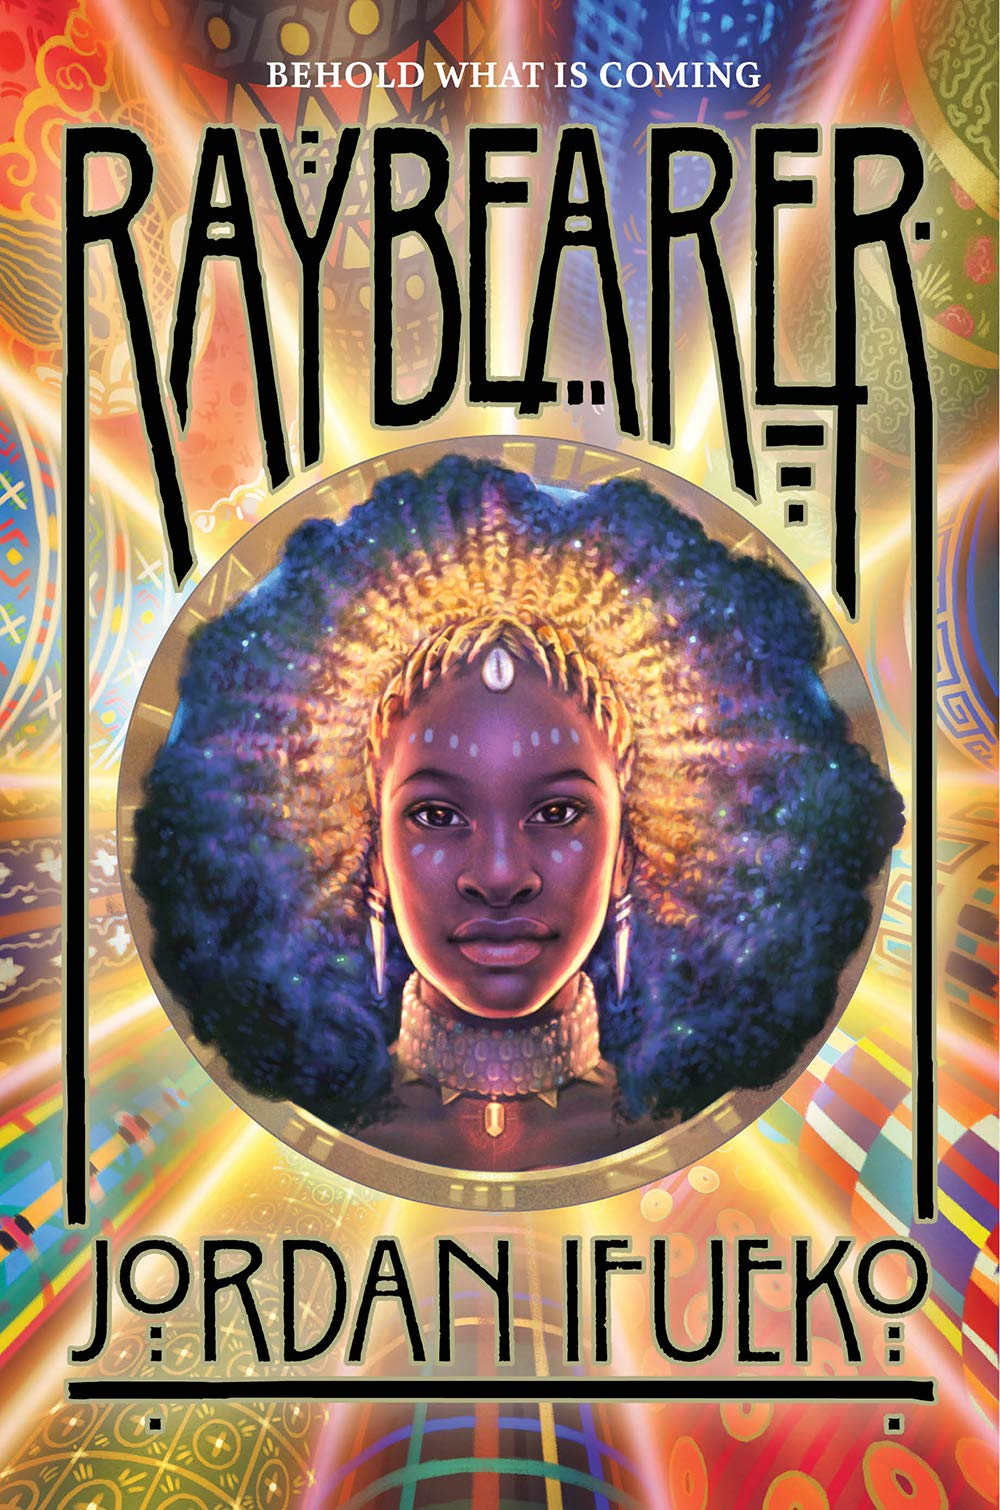 It's the cover of the book. At the very top of the image there's the title (Raybearer) in black while at the very bottom there's the author's name (Jordan Ifueko). The background is a pattern made up of different coloured rays (some gold, some red, some blue) whereas in the middle there is an image of a young black woman with her black hair fanned out around her. On her head she is wearing a golden tiara in the shape of rays that emanate out.